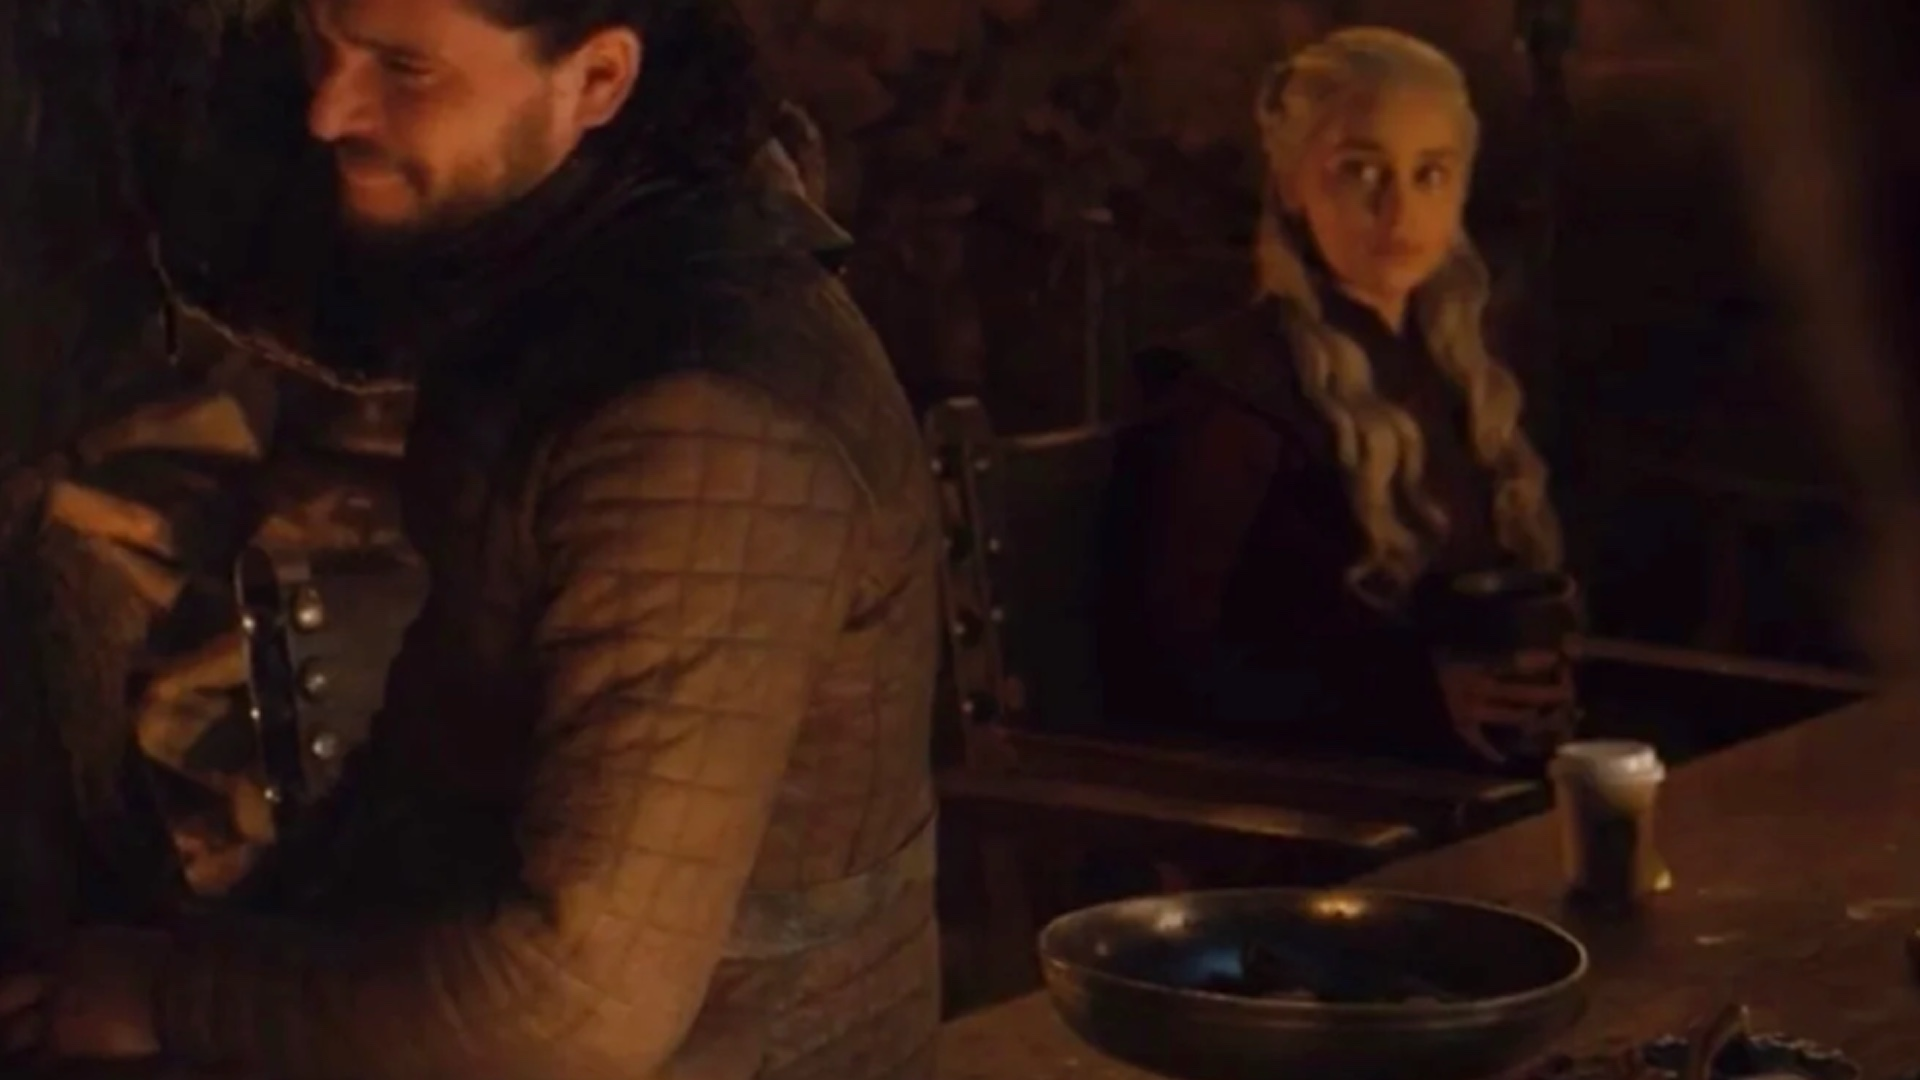 there-was-a-modern-day-coffee-cup-spotted-in-the-latest-episode-of-game-of-thrones-social.jpg